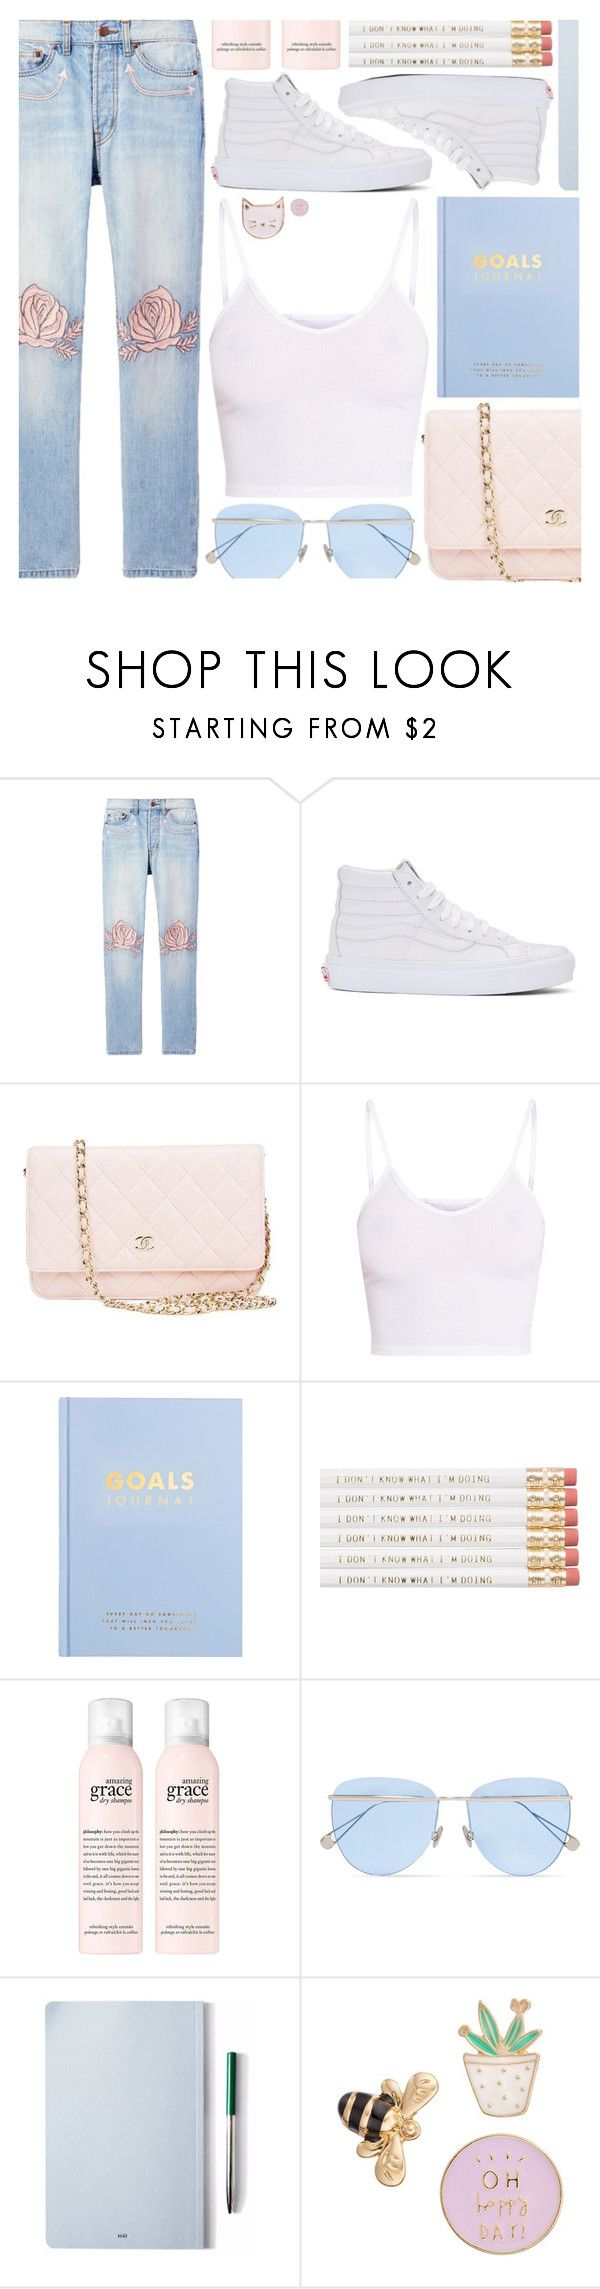 """I knew a guy just like you once..."" by pastelneon ❤ liked on Polyvore featuring Bliss and Mischief, Vans, Chanel, BasicGrey, kikki.K, Sunday Somewhere, The Idle Man and LC Lauren Conrad"